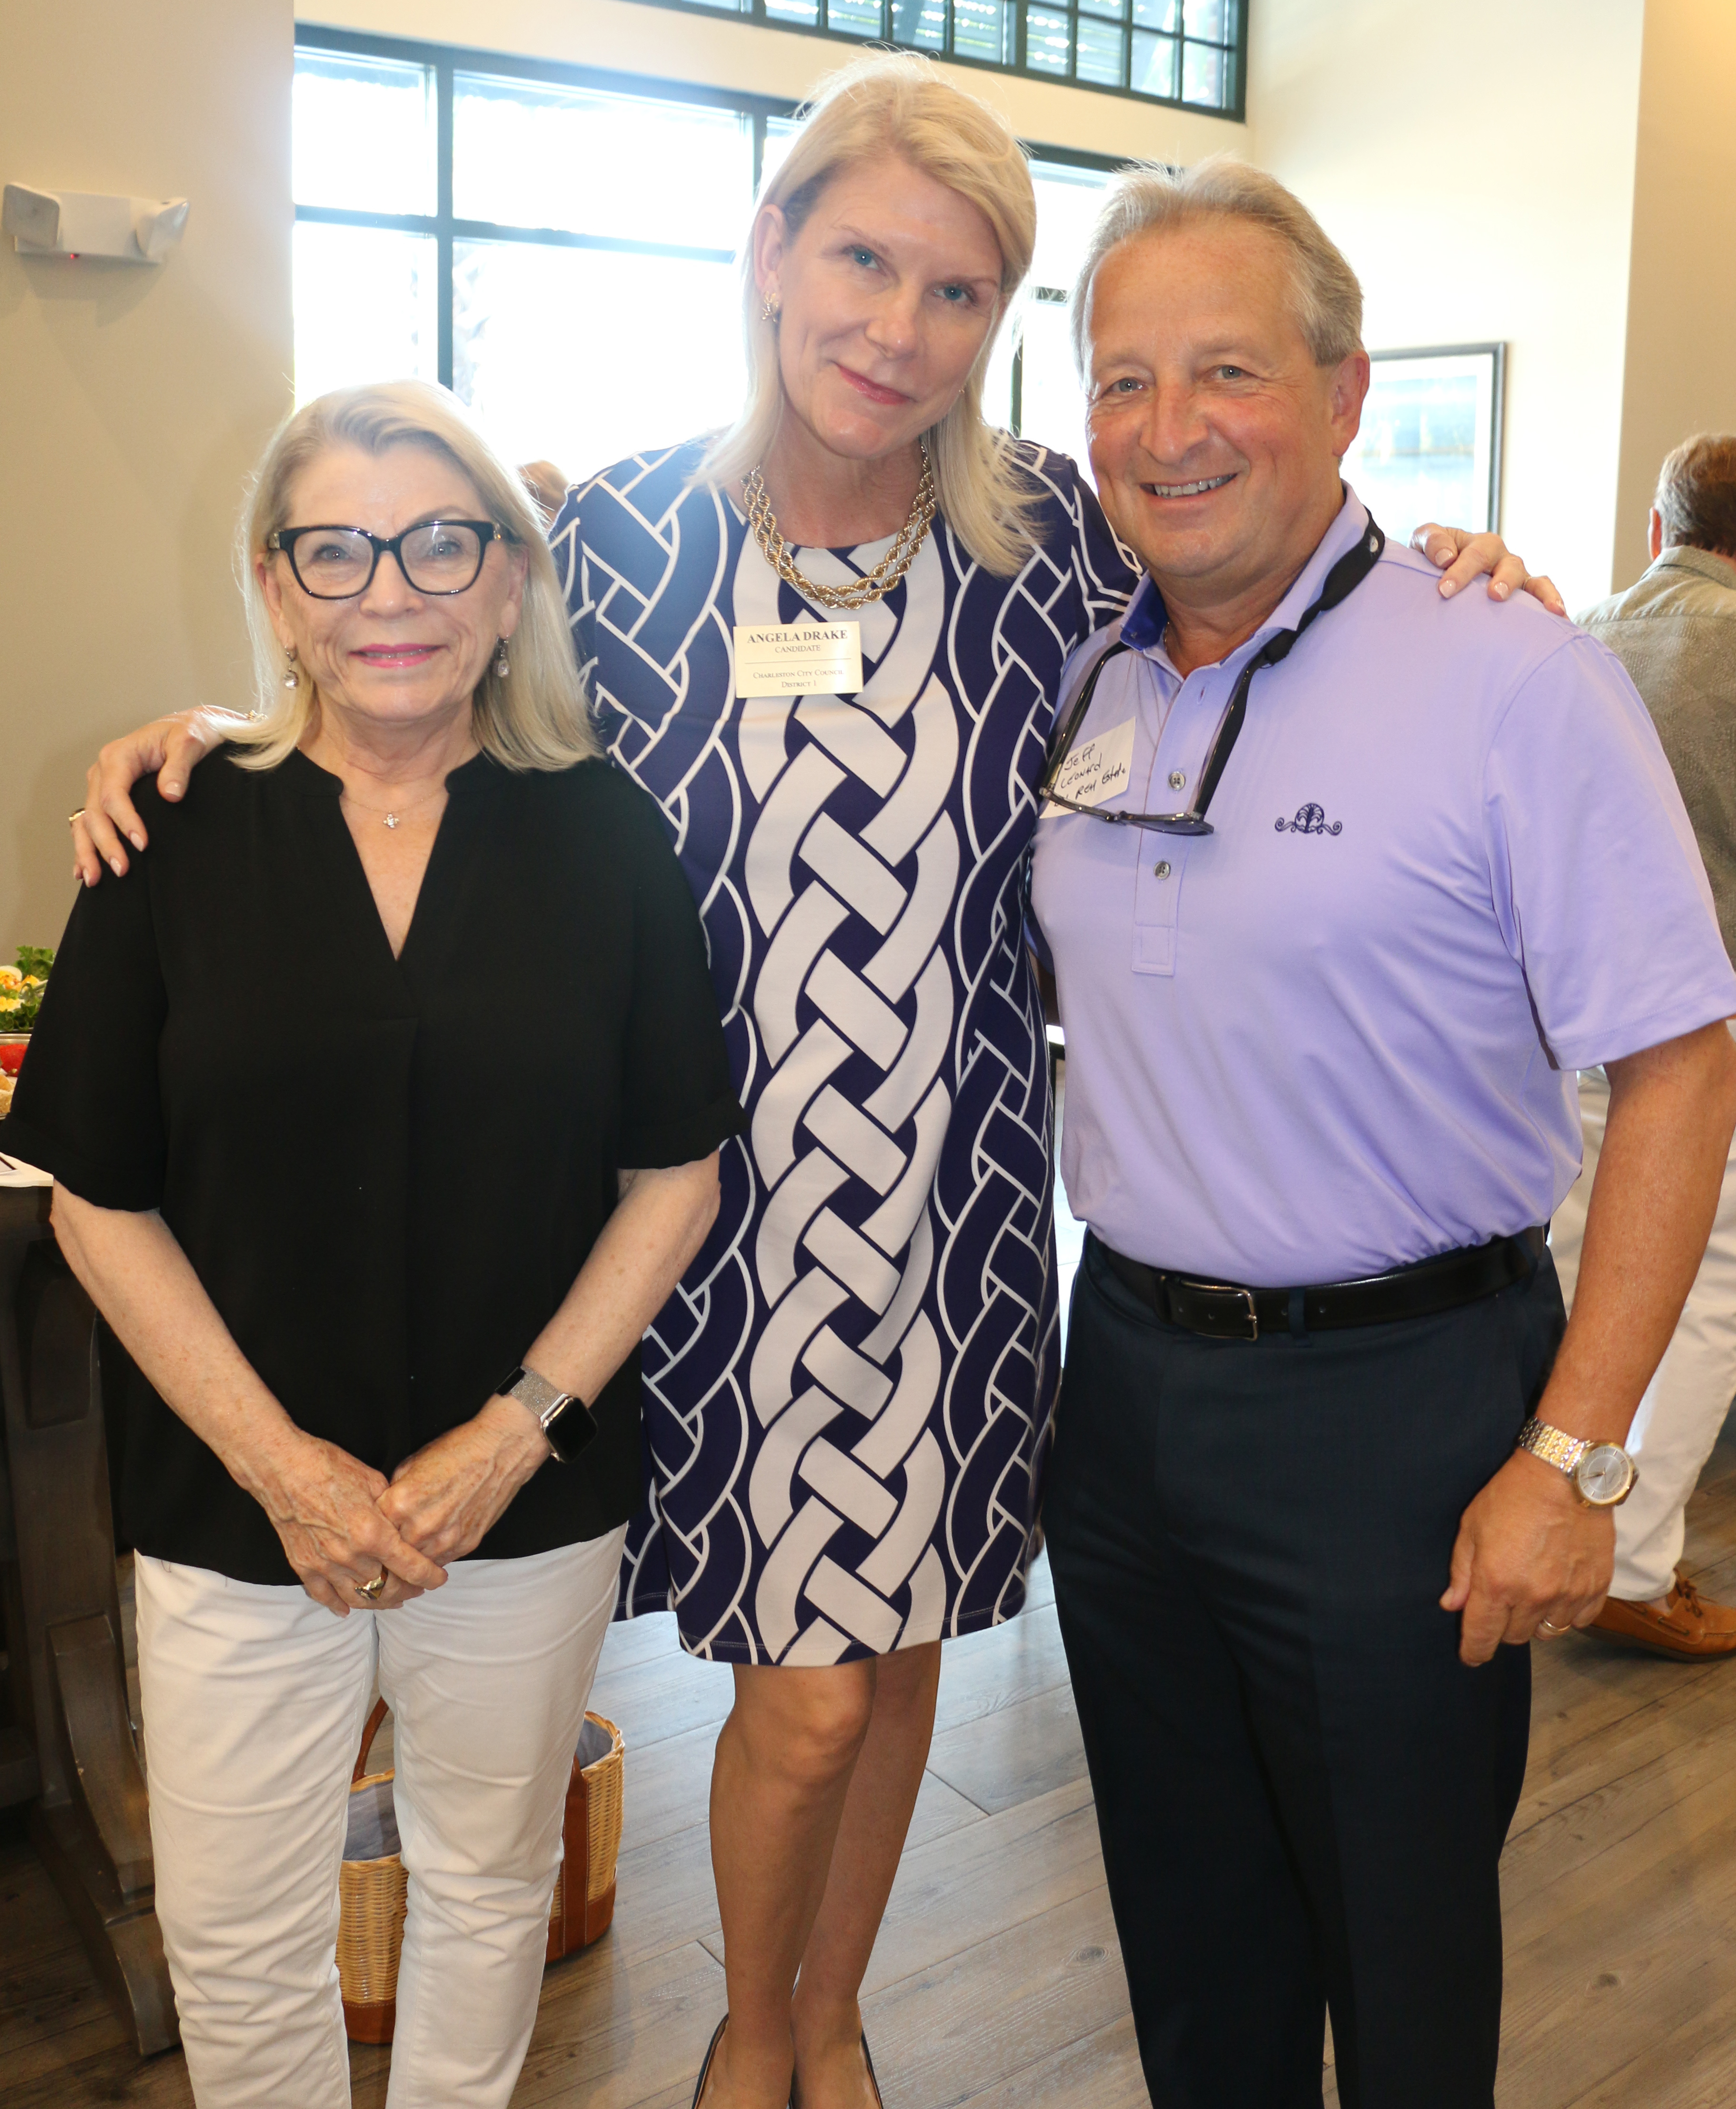 Daniel Island Real Estate agents Sally Castengera and Angela Drake visit with their broker, Jeff Leonard, as they enjoy food and festivities at the DIBA Block Party.